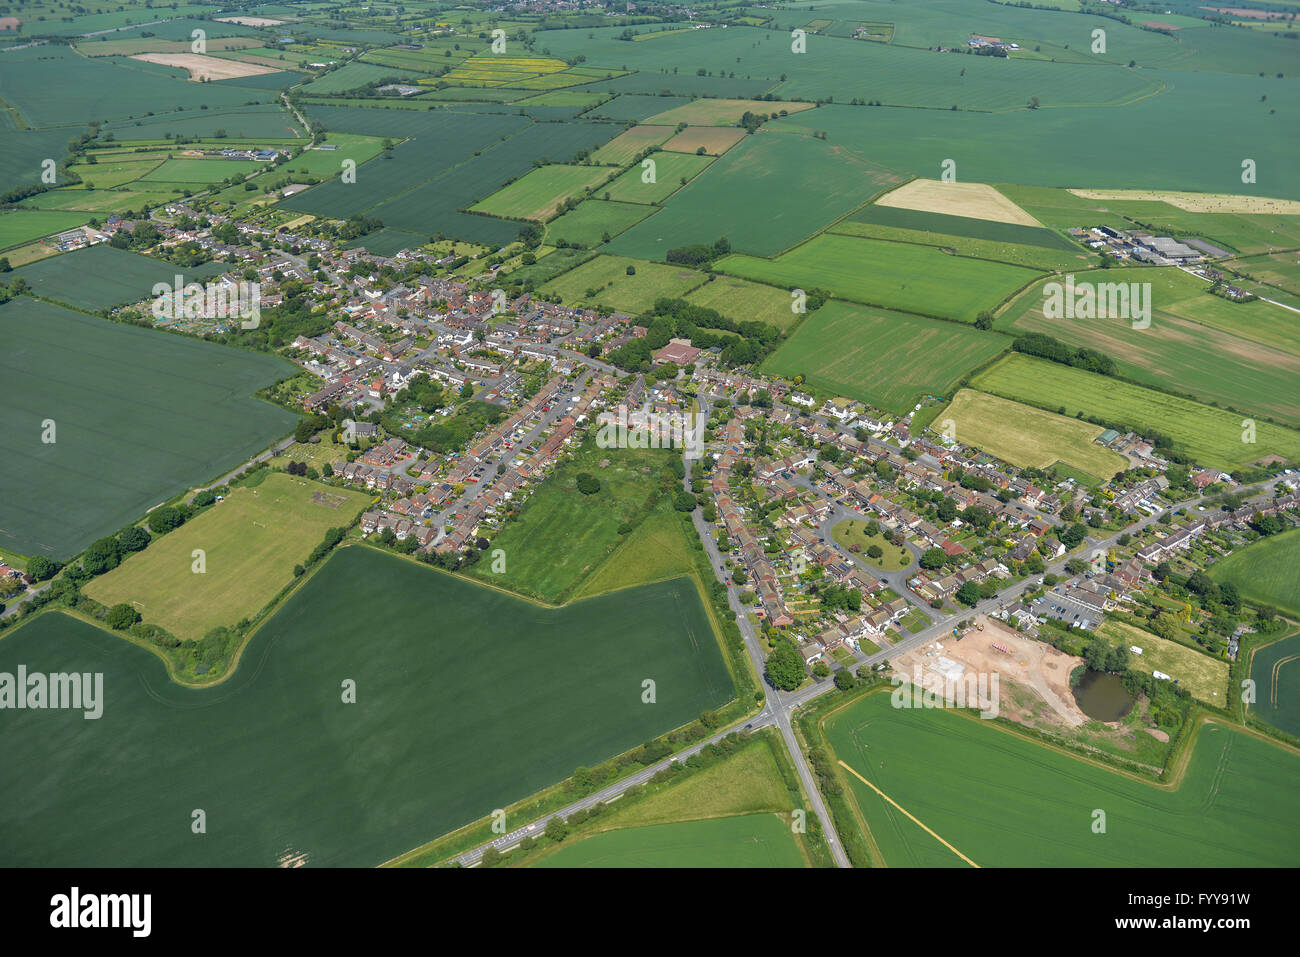 An aerial view of the village of Warton and surrounding Warwickshire countryside - Stock Image